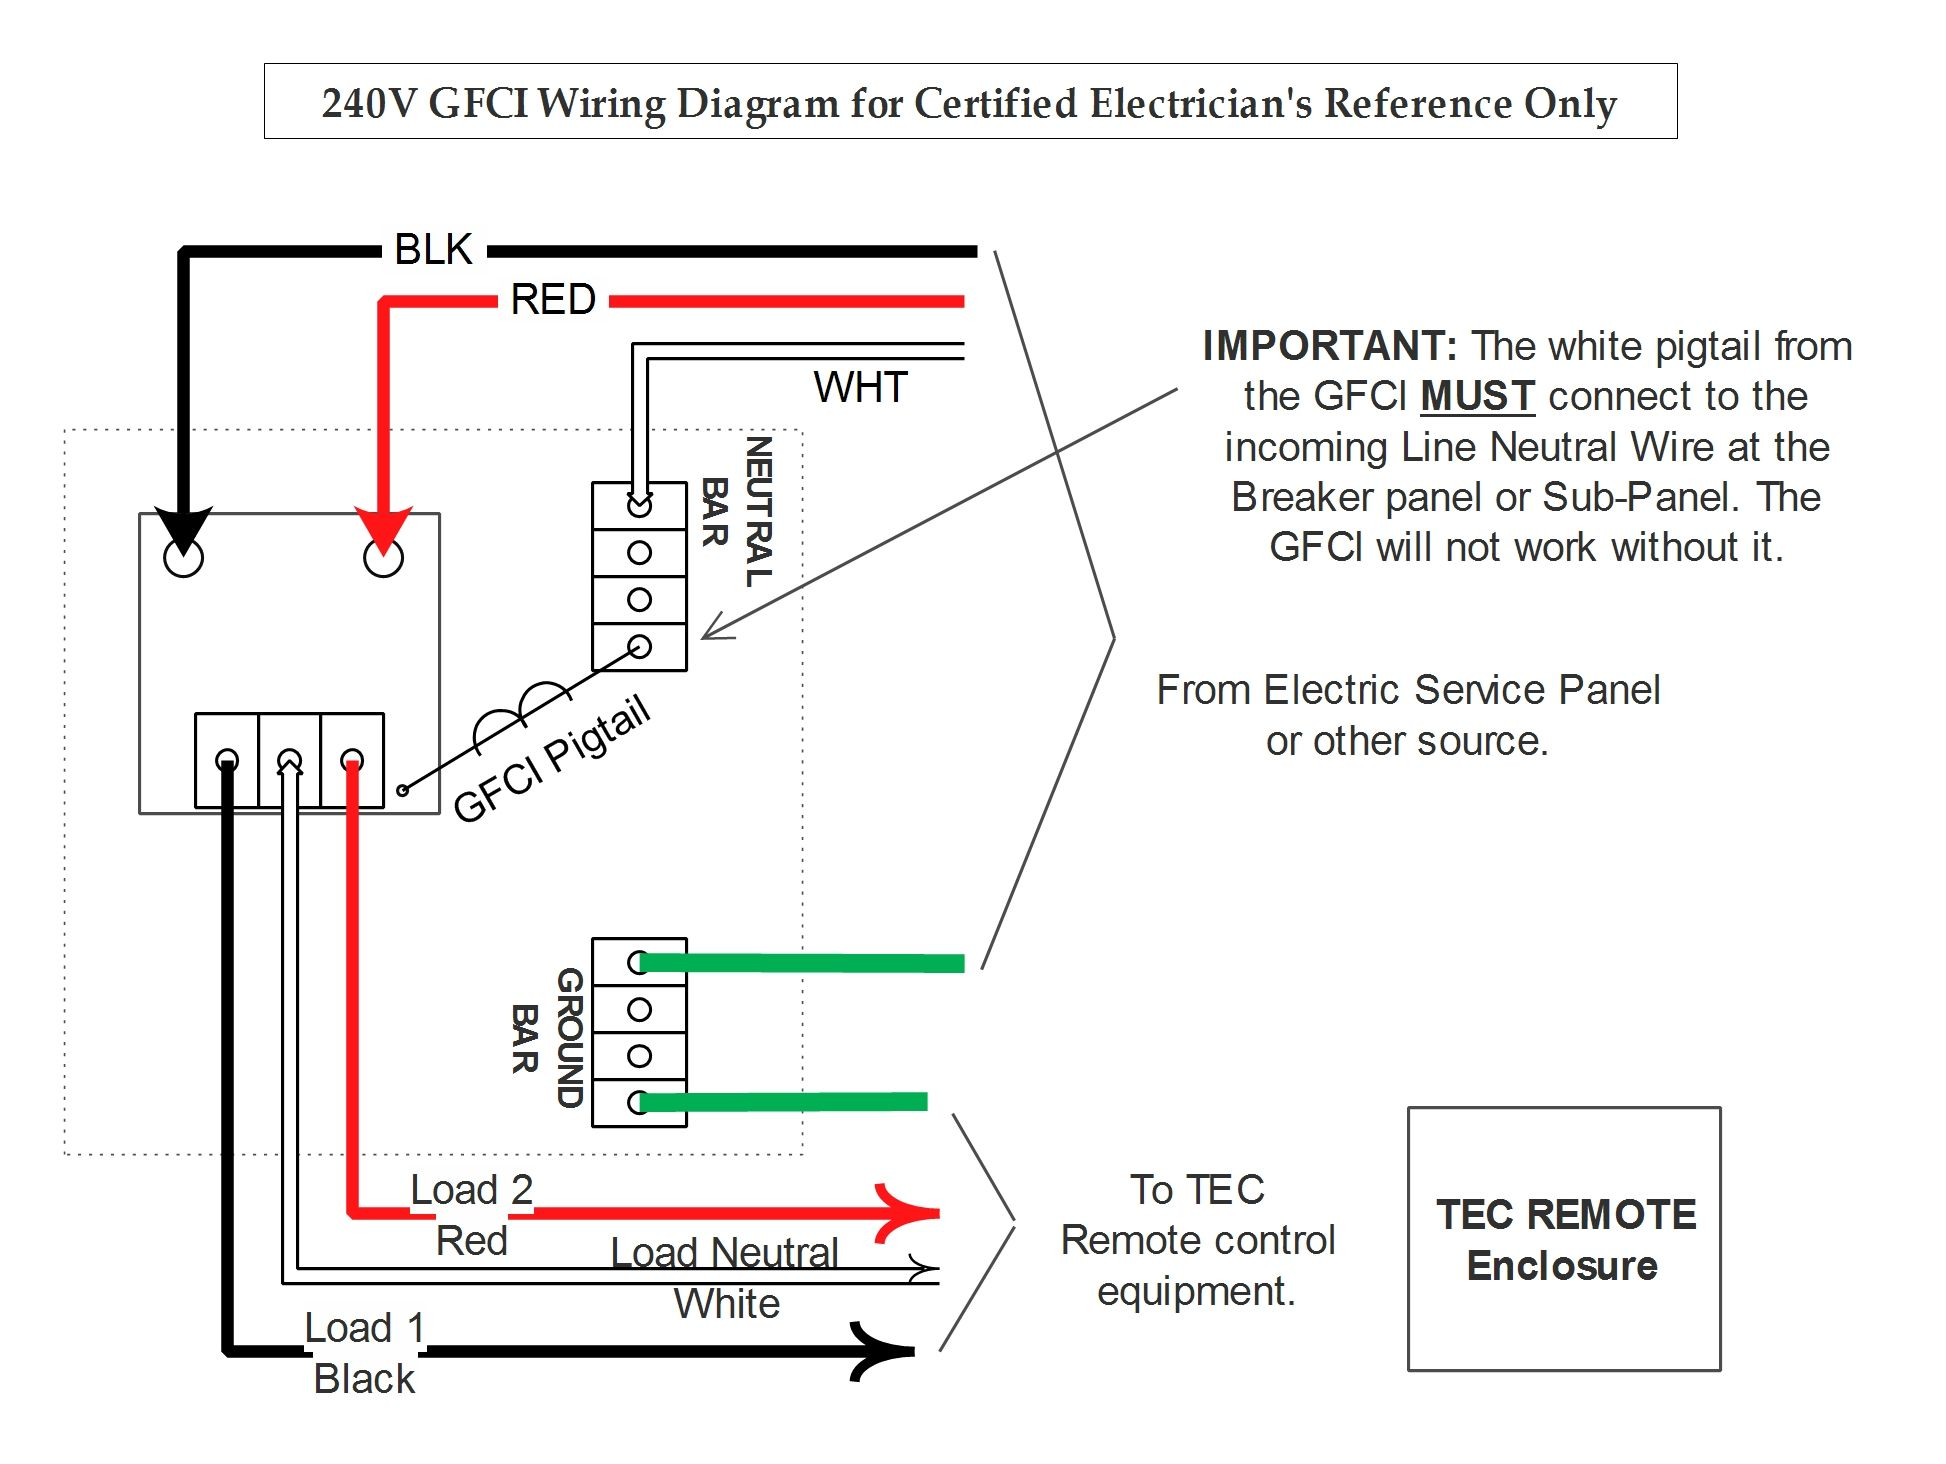 Wiring & Installation on 240 volt time delay relay, 240 volt 3 phase motor wiring, california three-way switch diagram, 240 volt gfci breaker diagram, simple photocell diagram, 24 volt wiring diagram, air compressor 240 volt circuit diagram,